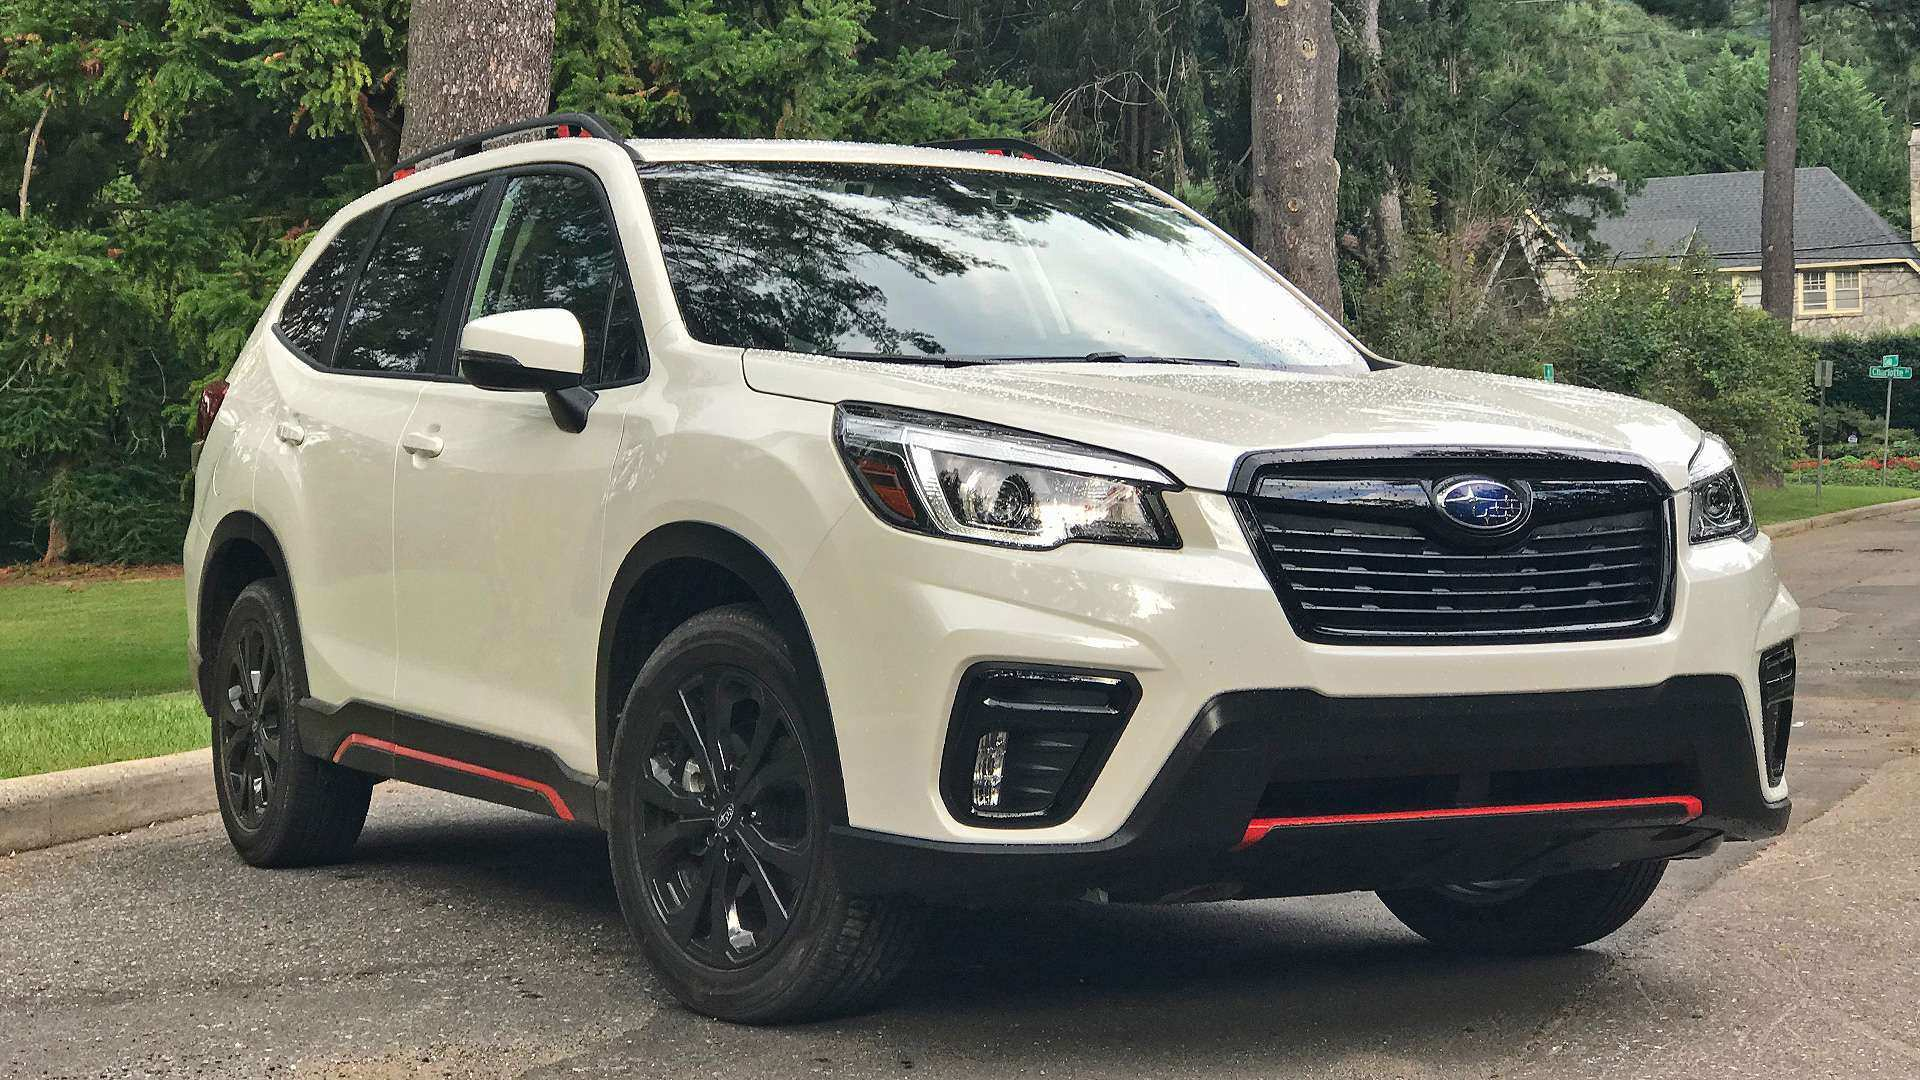 98 Great 2019 Subaru Forester Mpg Images by 2019 Subaru Forester Mpg